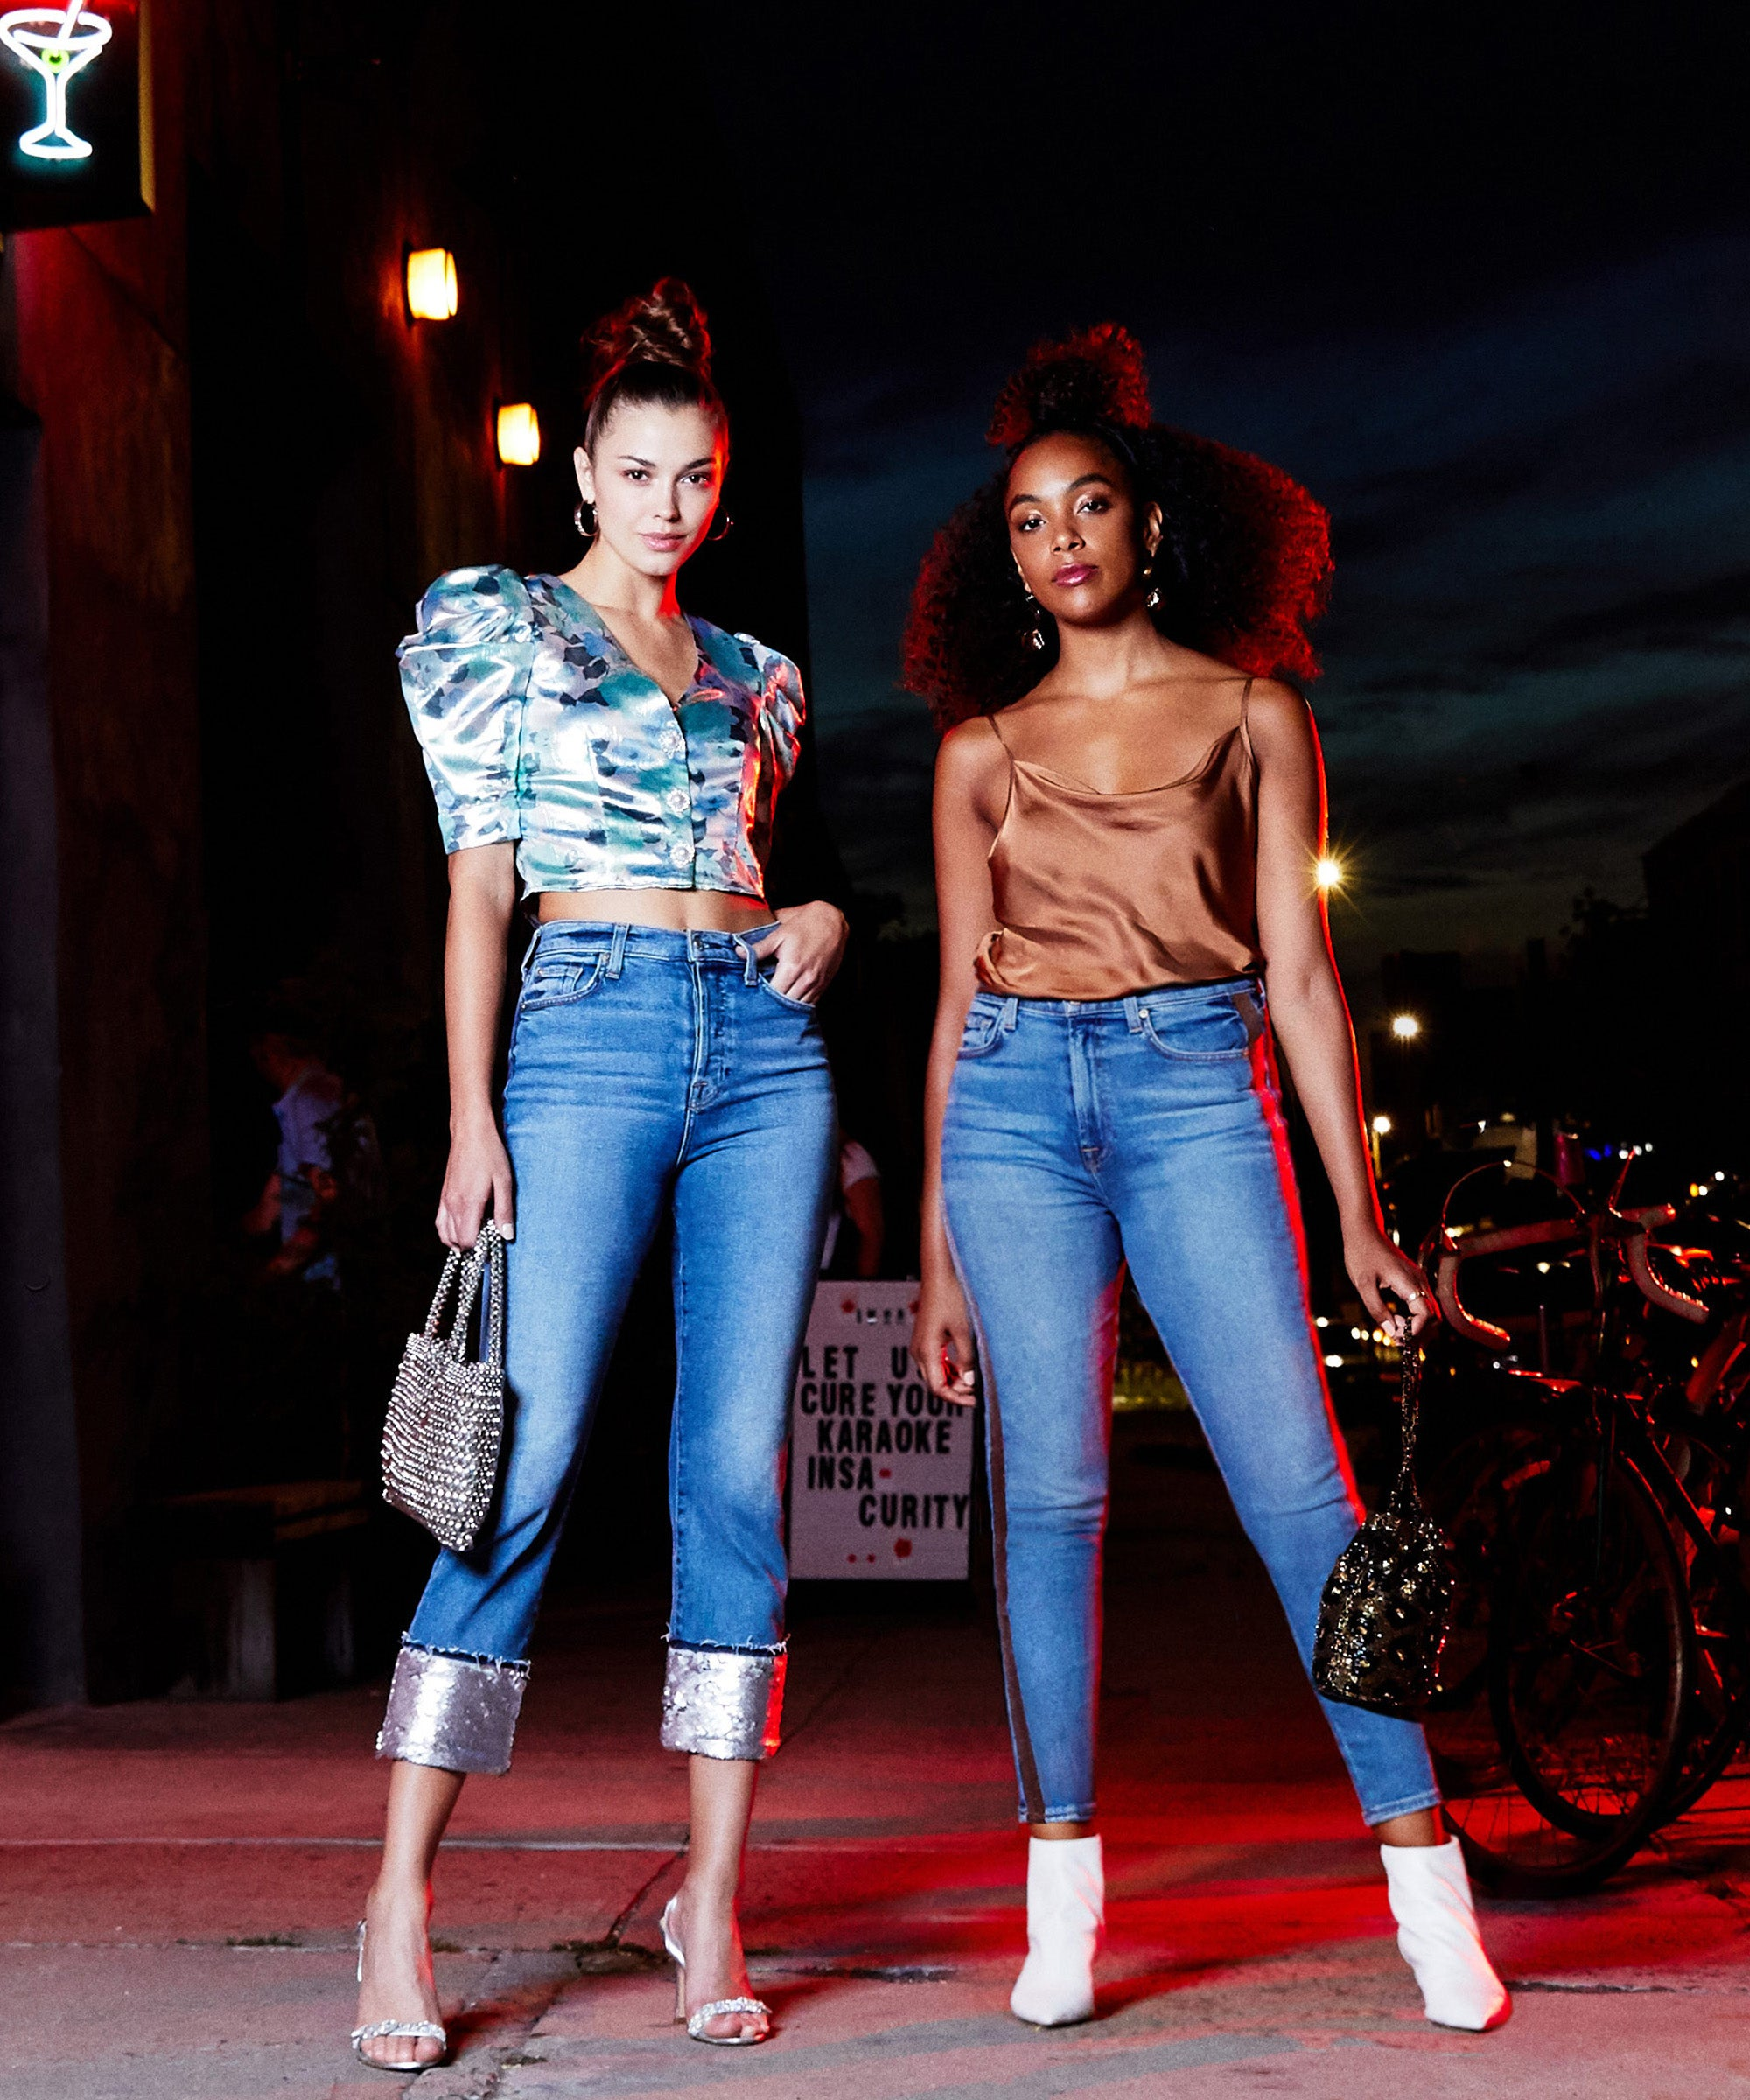 These Are The ONLY Jeans You Need For Your Next Night Out In New York